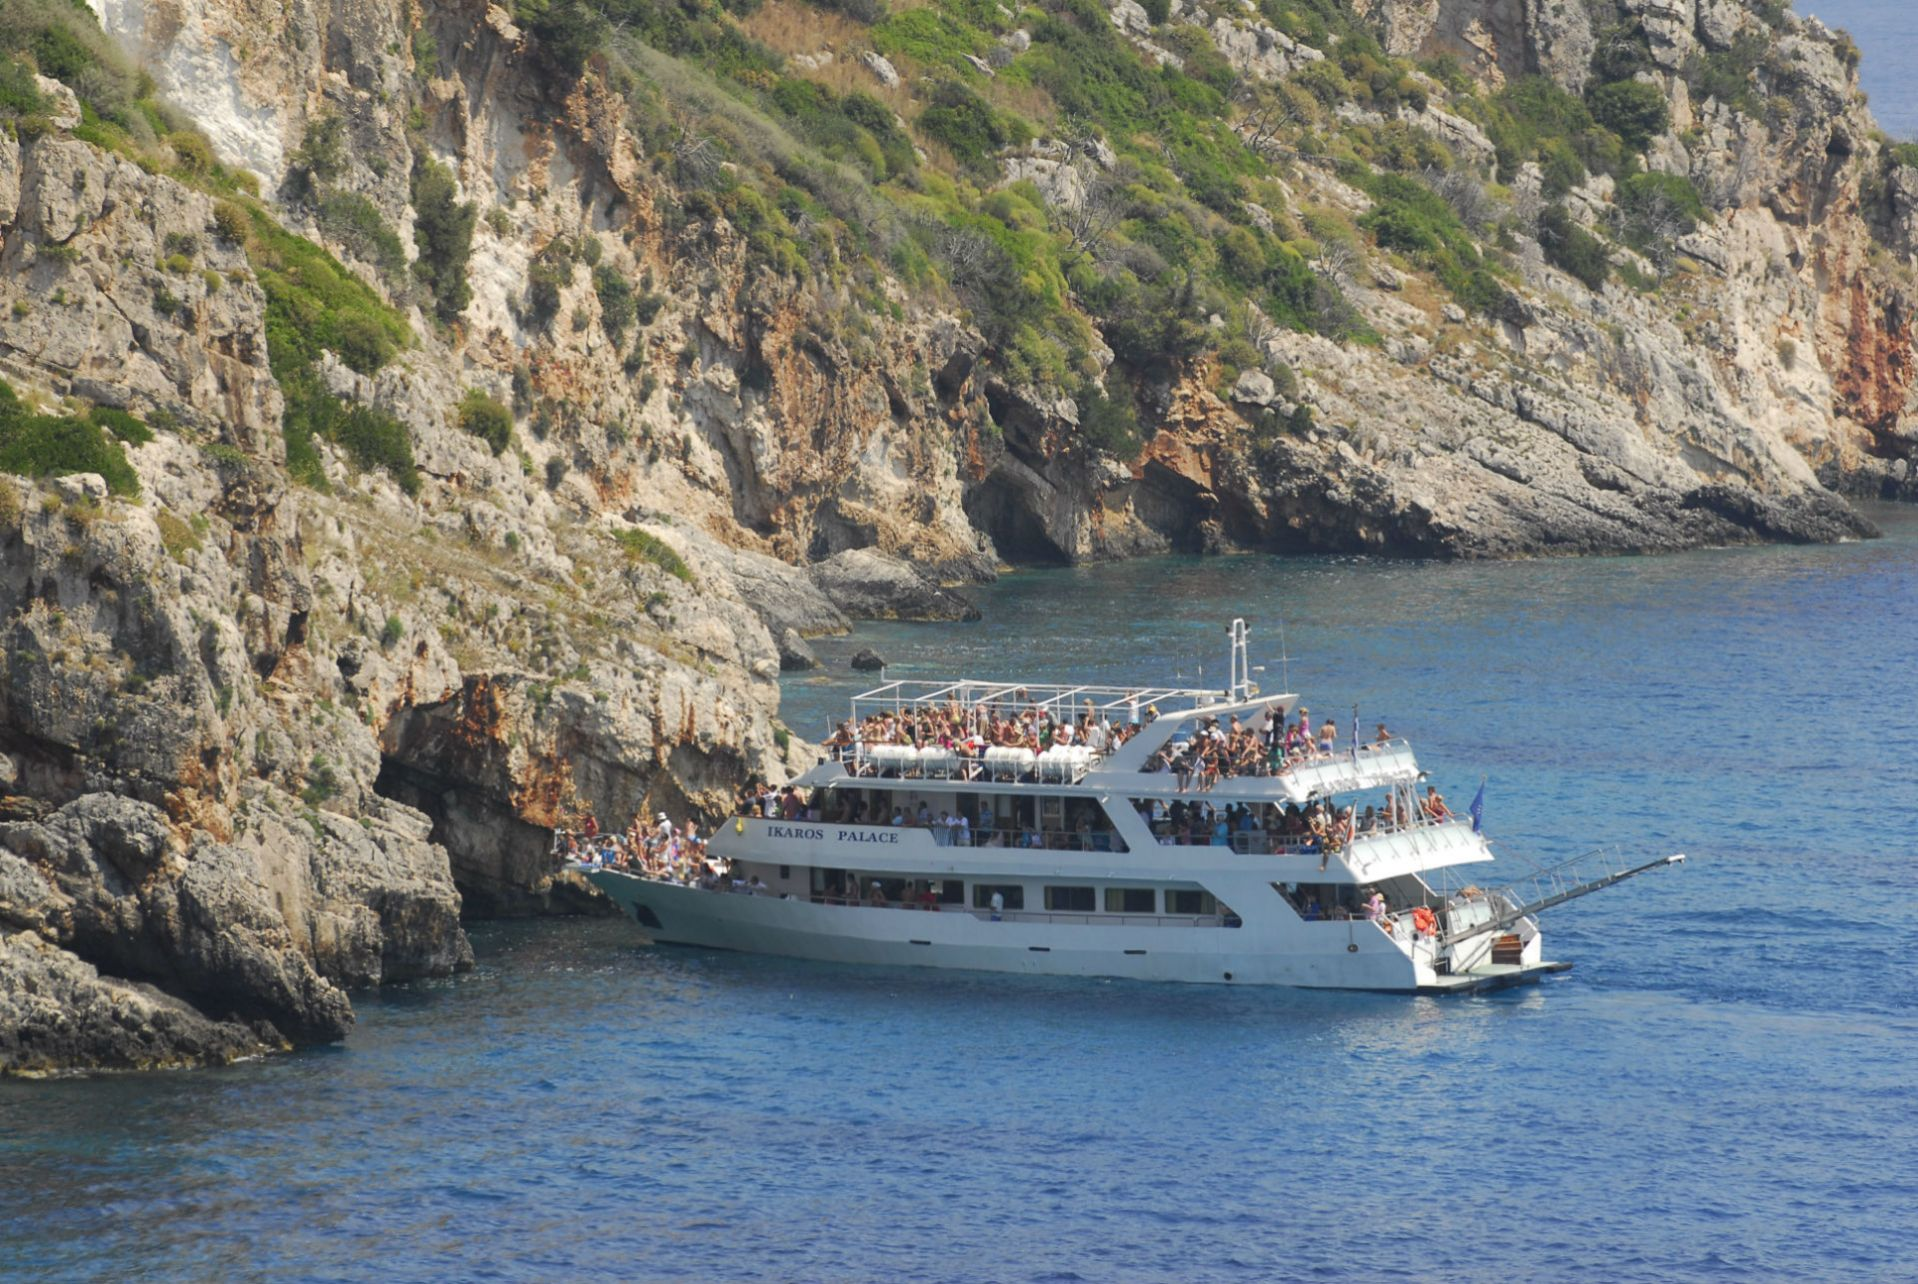 Zakynthos Cruise caves Ikaros Palace Seven Islands Cruises Κρουαζιερες Λευκάδας